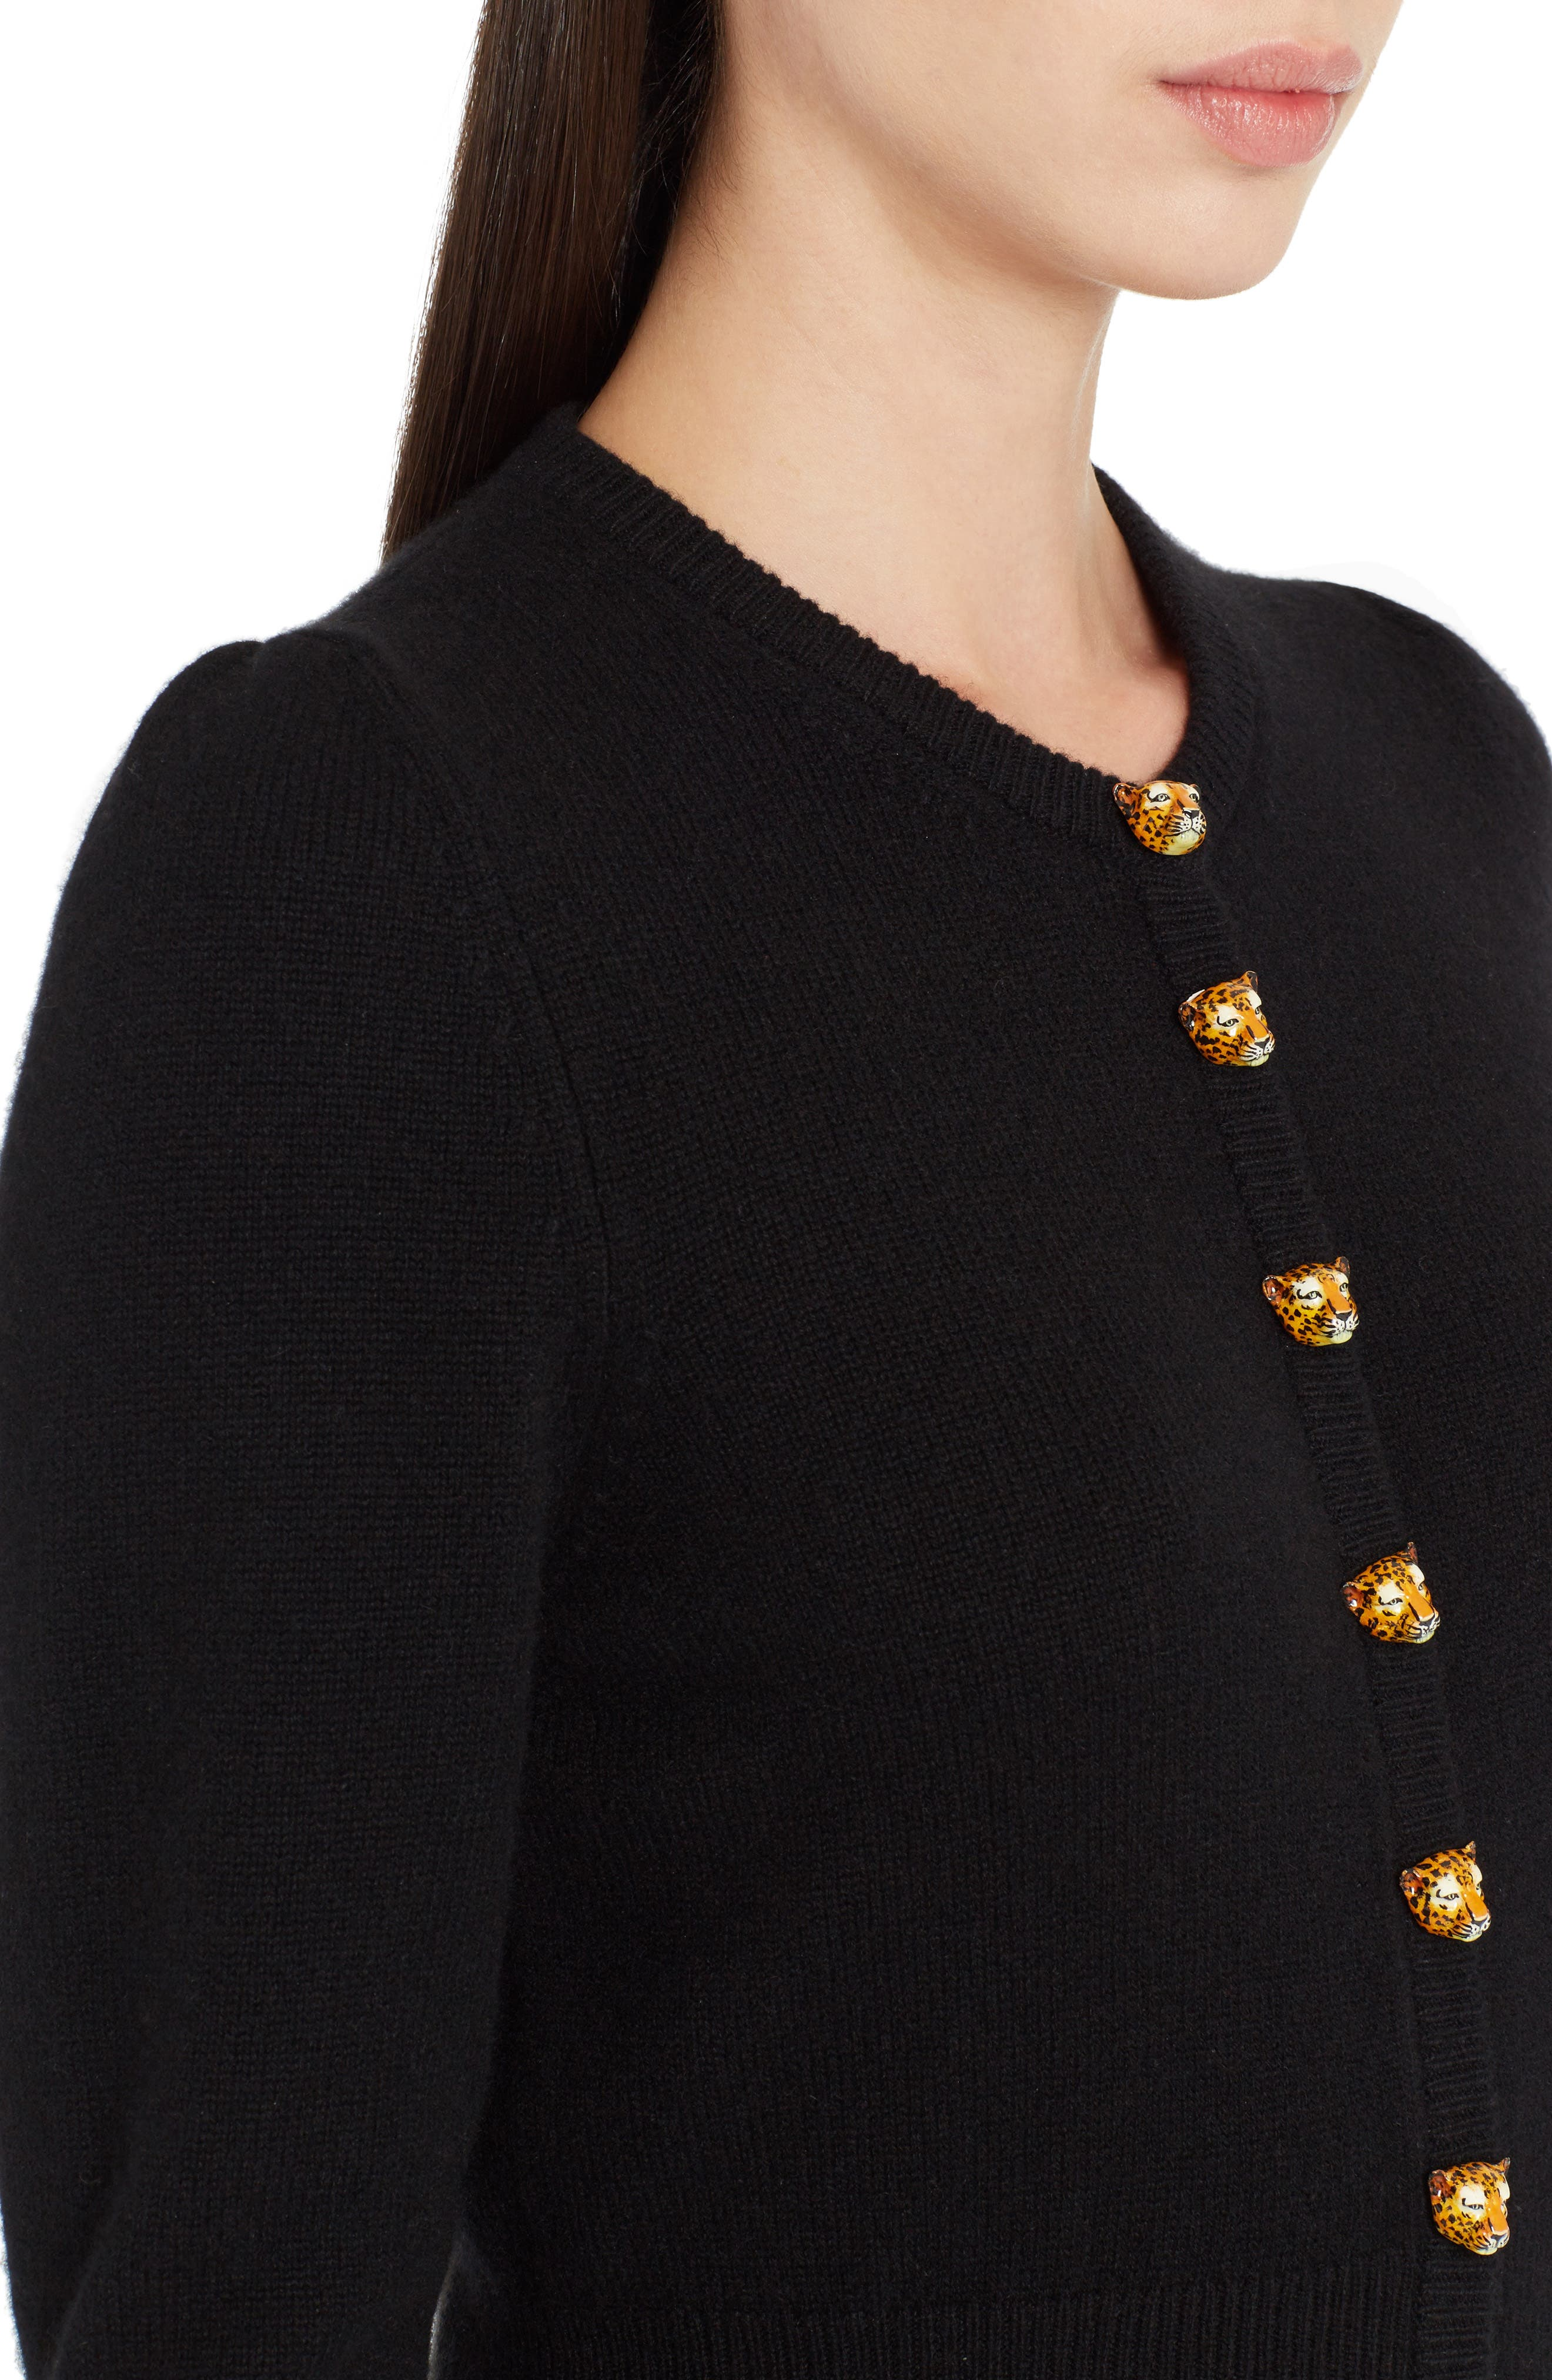 Leo Button Cashmere Cardigan,                             Alternate thumbnail 4, color,                             Black